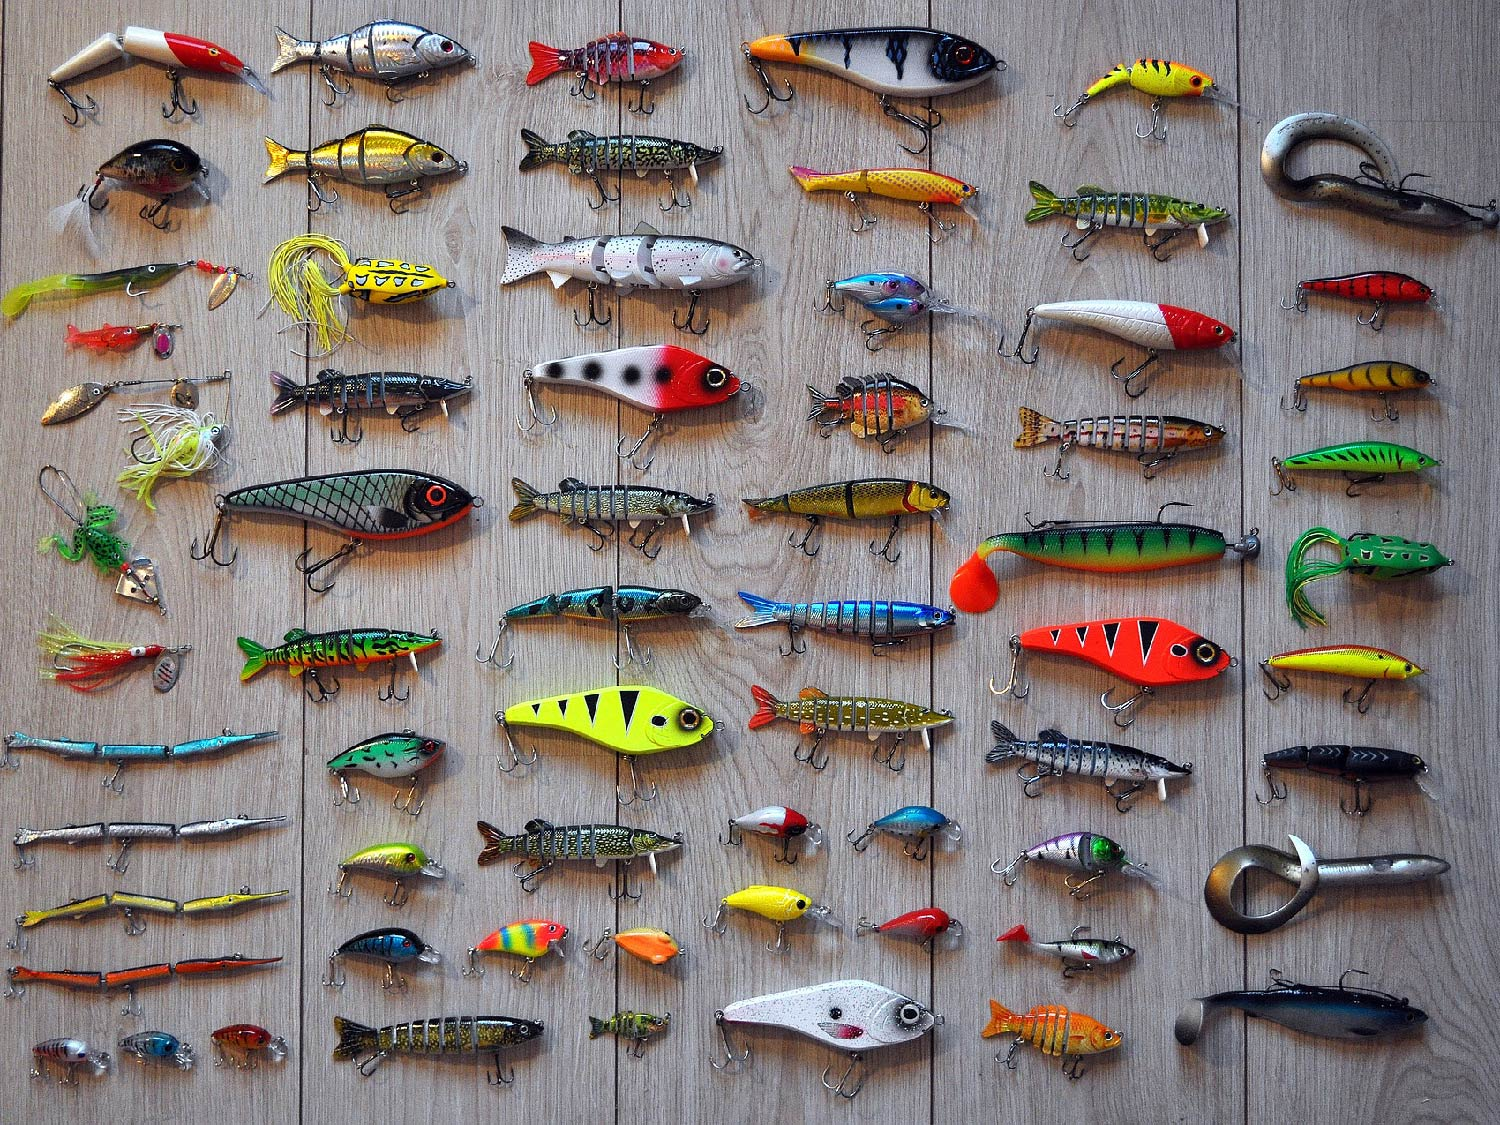 How To Pick The Best Minnow Trap